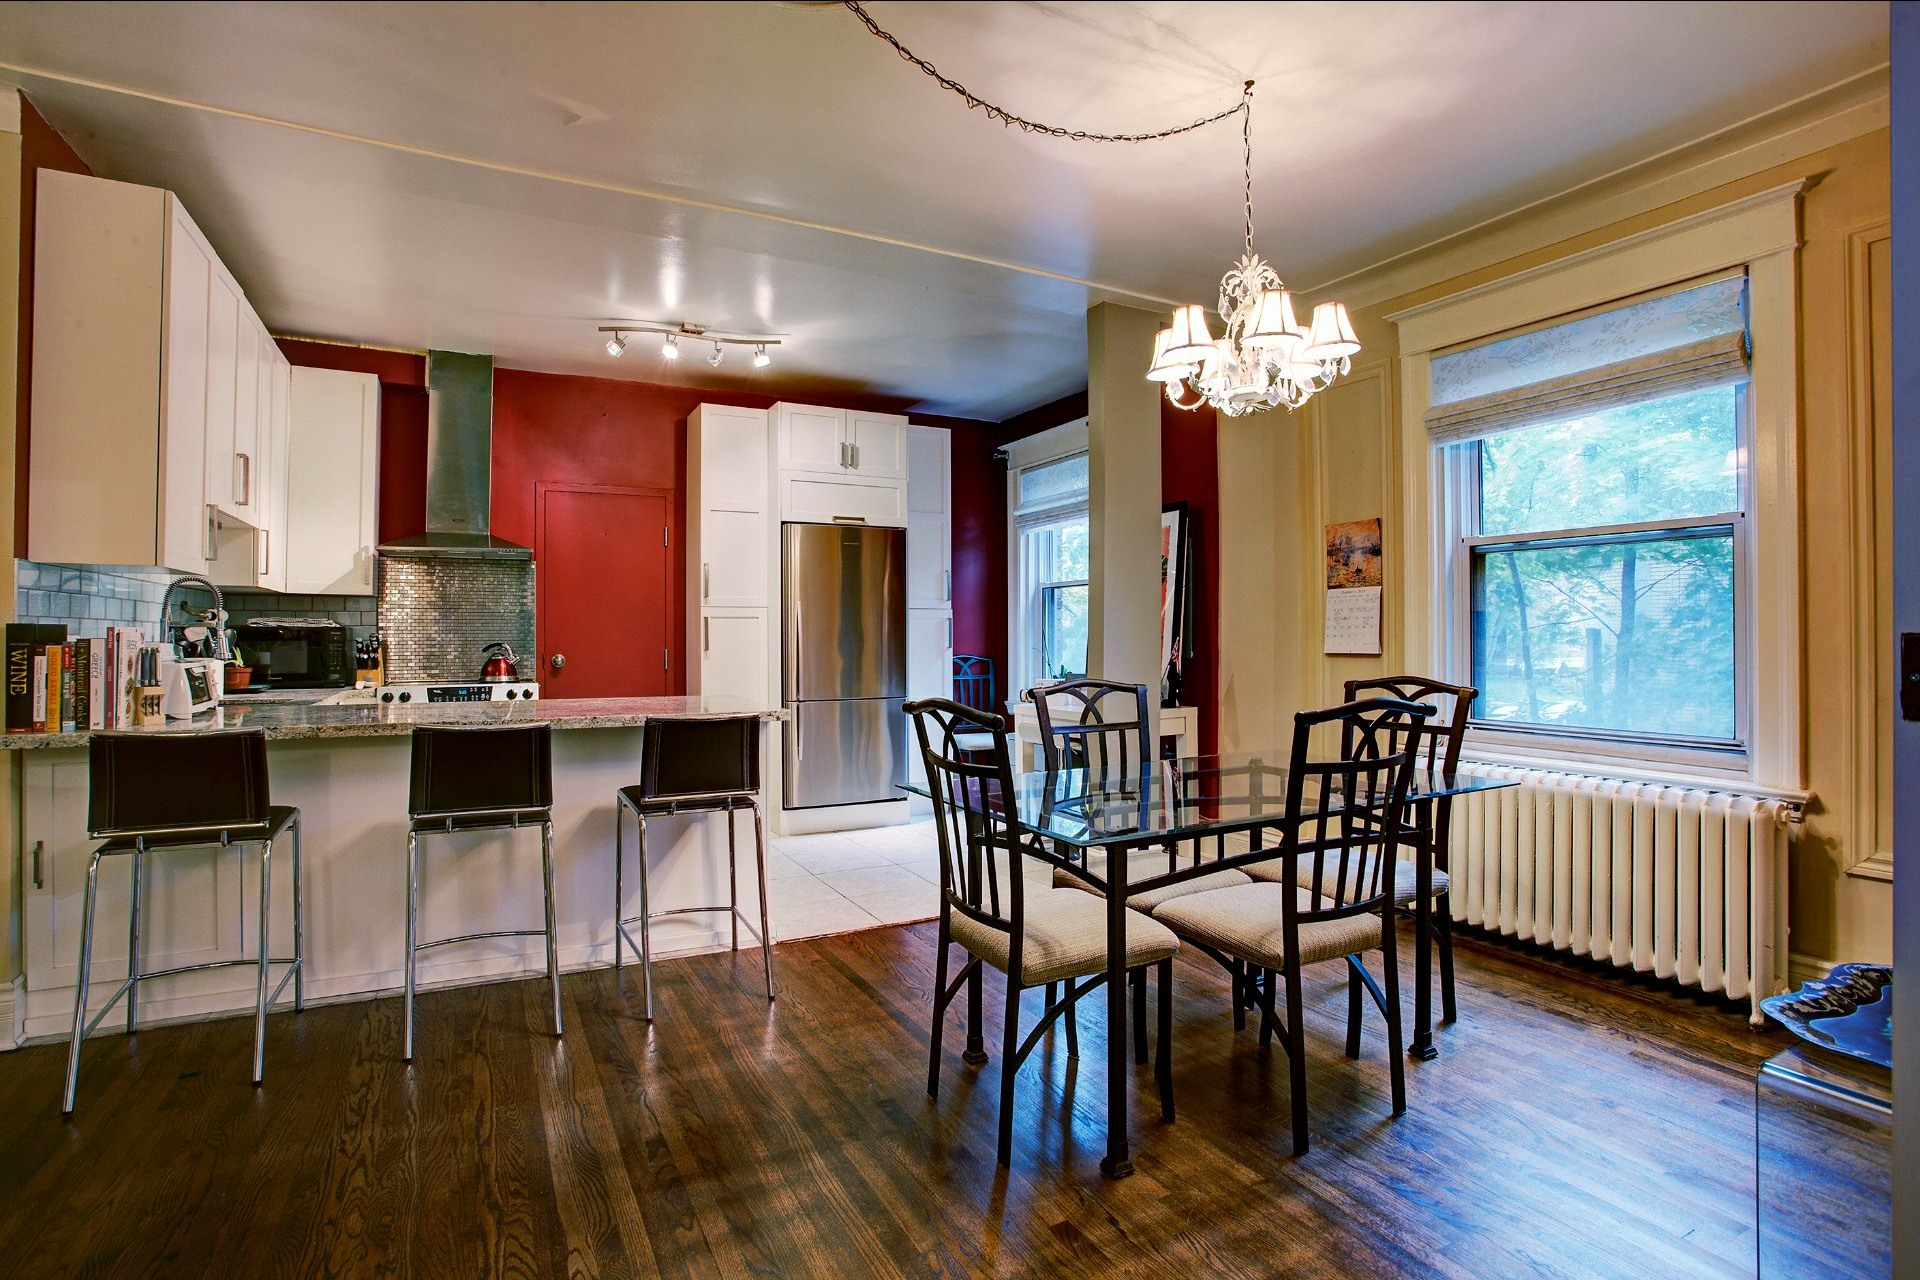 image 8 - Apartment For sale Westmount - 3 rooms